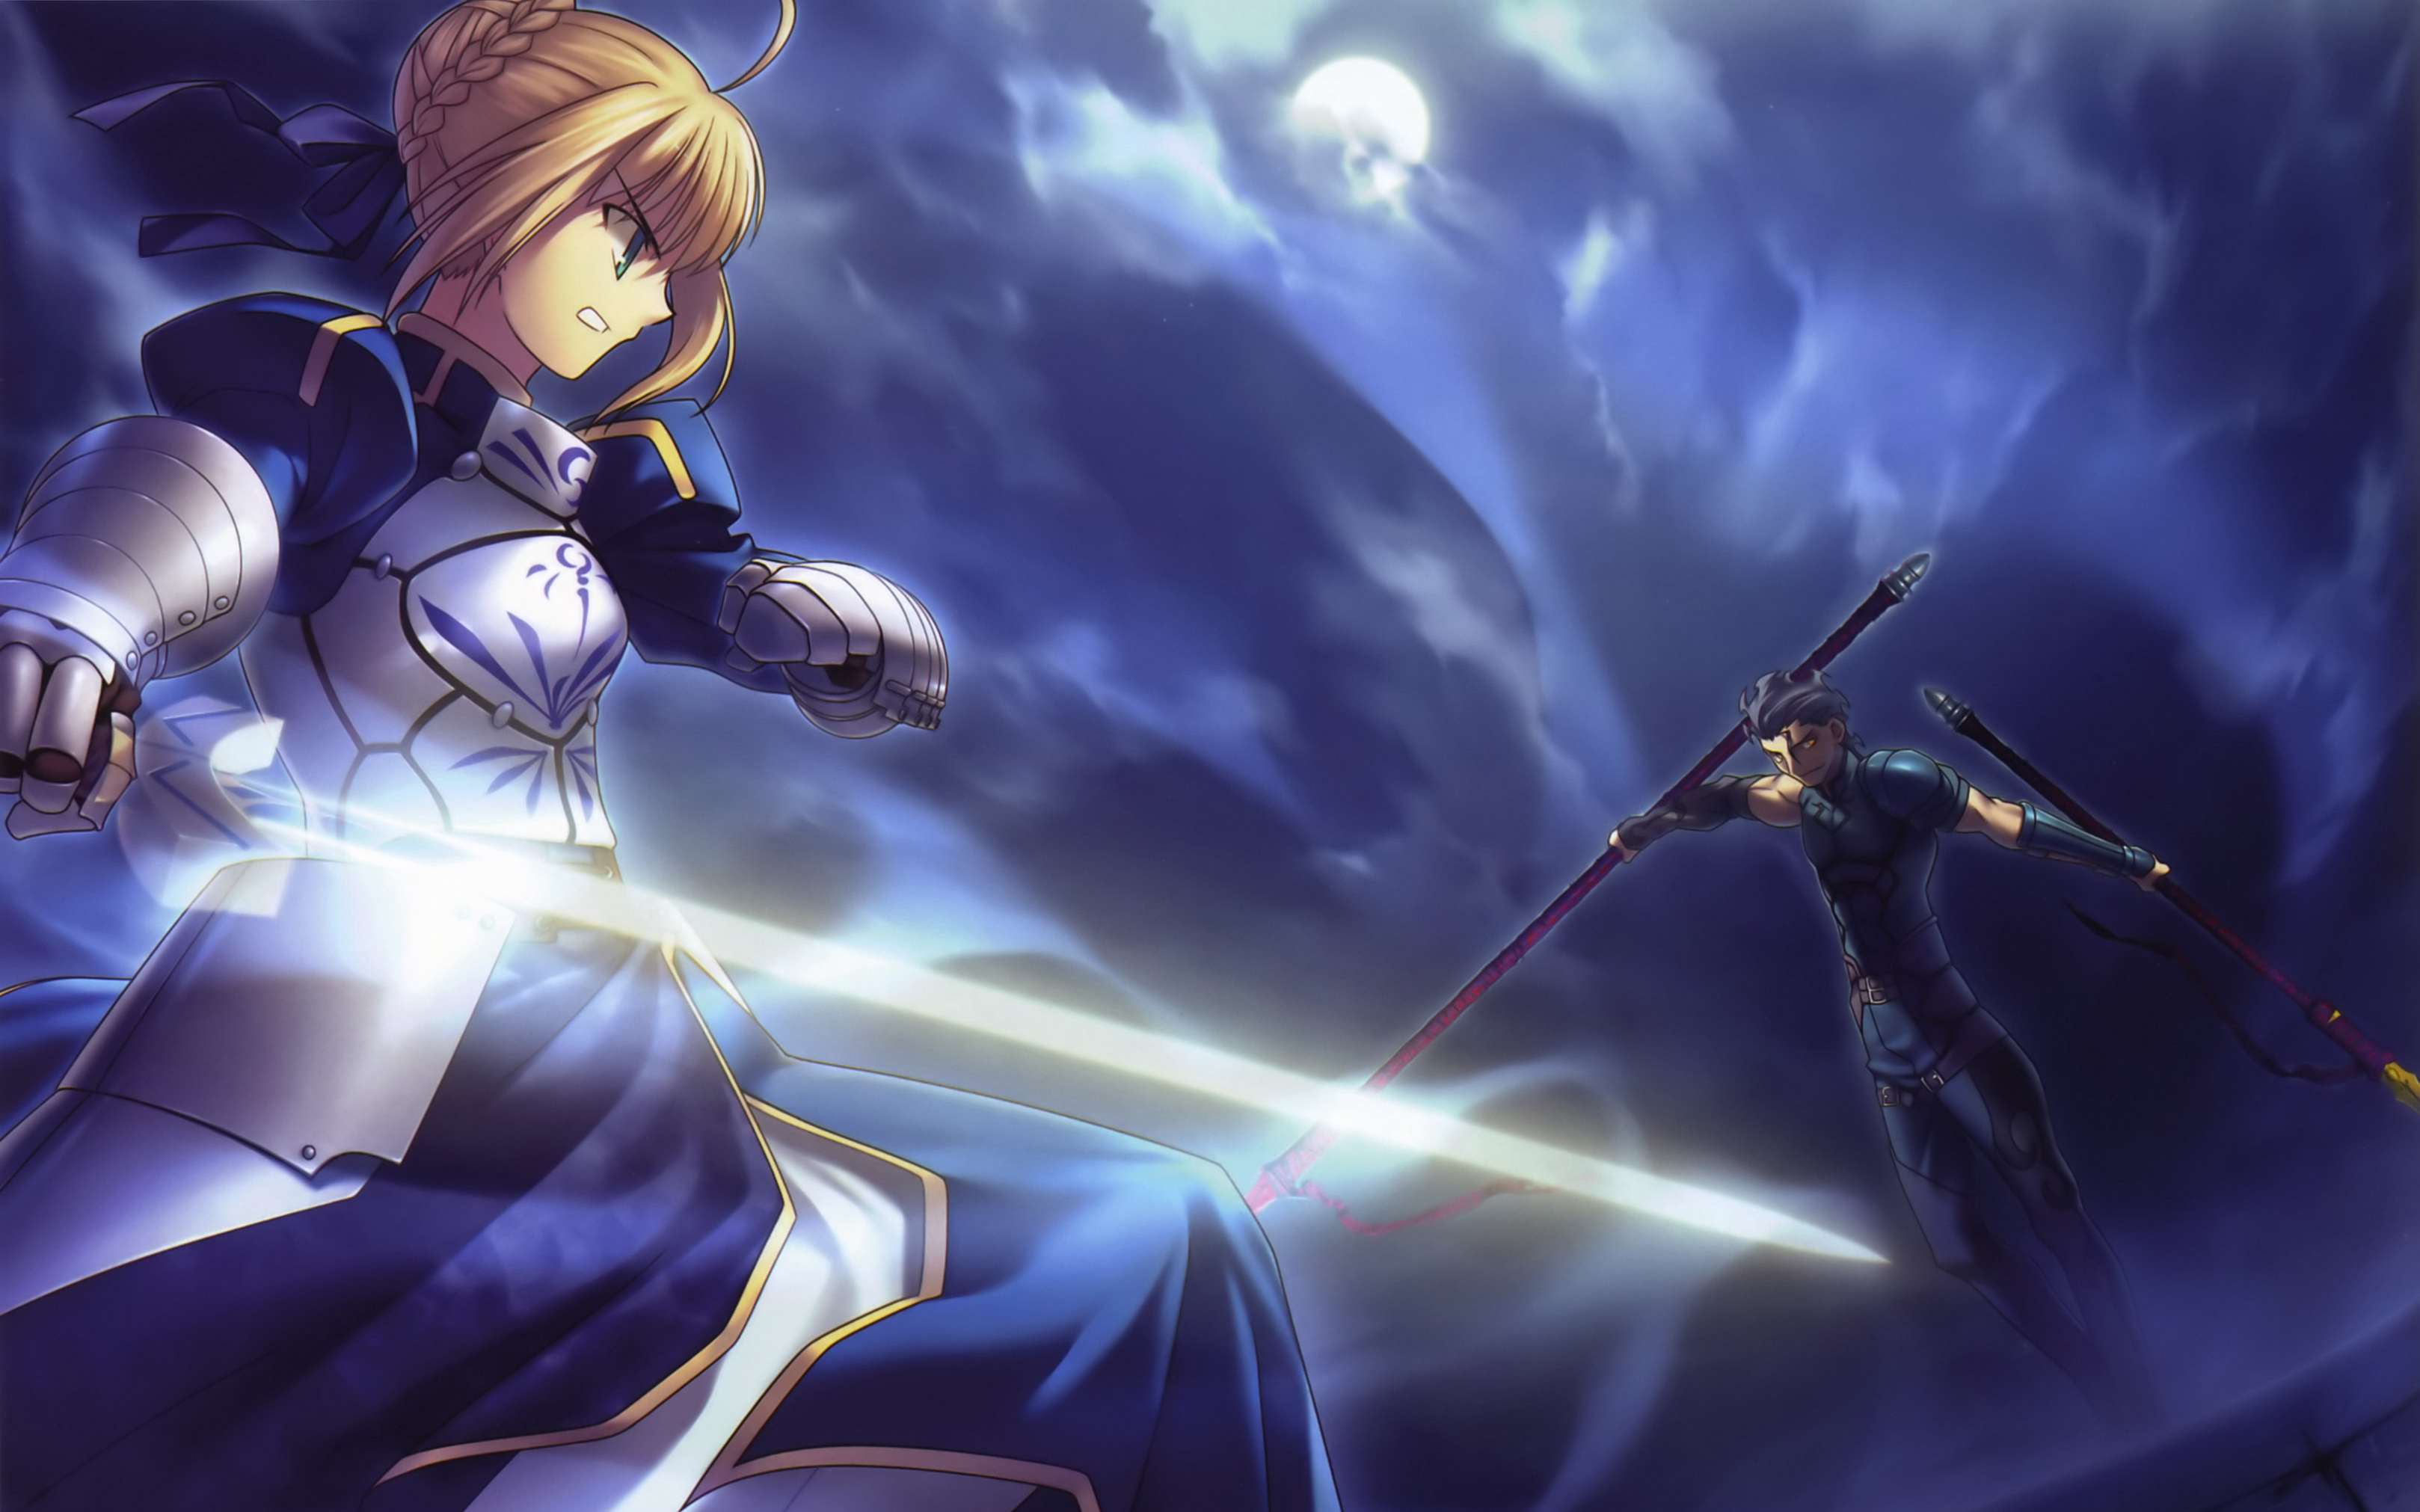 Fate Stay Night Wallpaper Fate Stay Night Desktop 480453 Hd